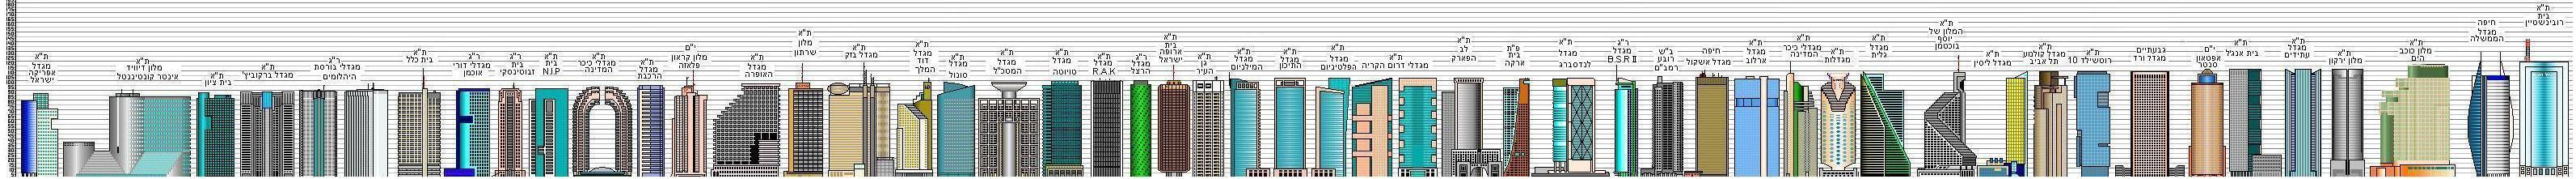 future skyscrapers diagrams of tel aviv  amp  ramat gan   israel    note  only about  to    of these building in these diagrams were completed        such as city gate in ramat gan  amp  sail tower in haifa    etc